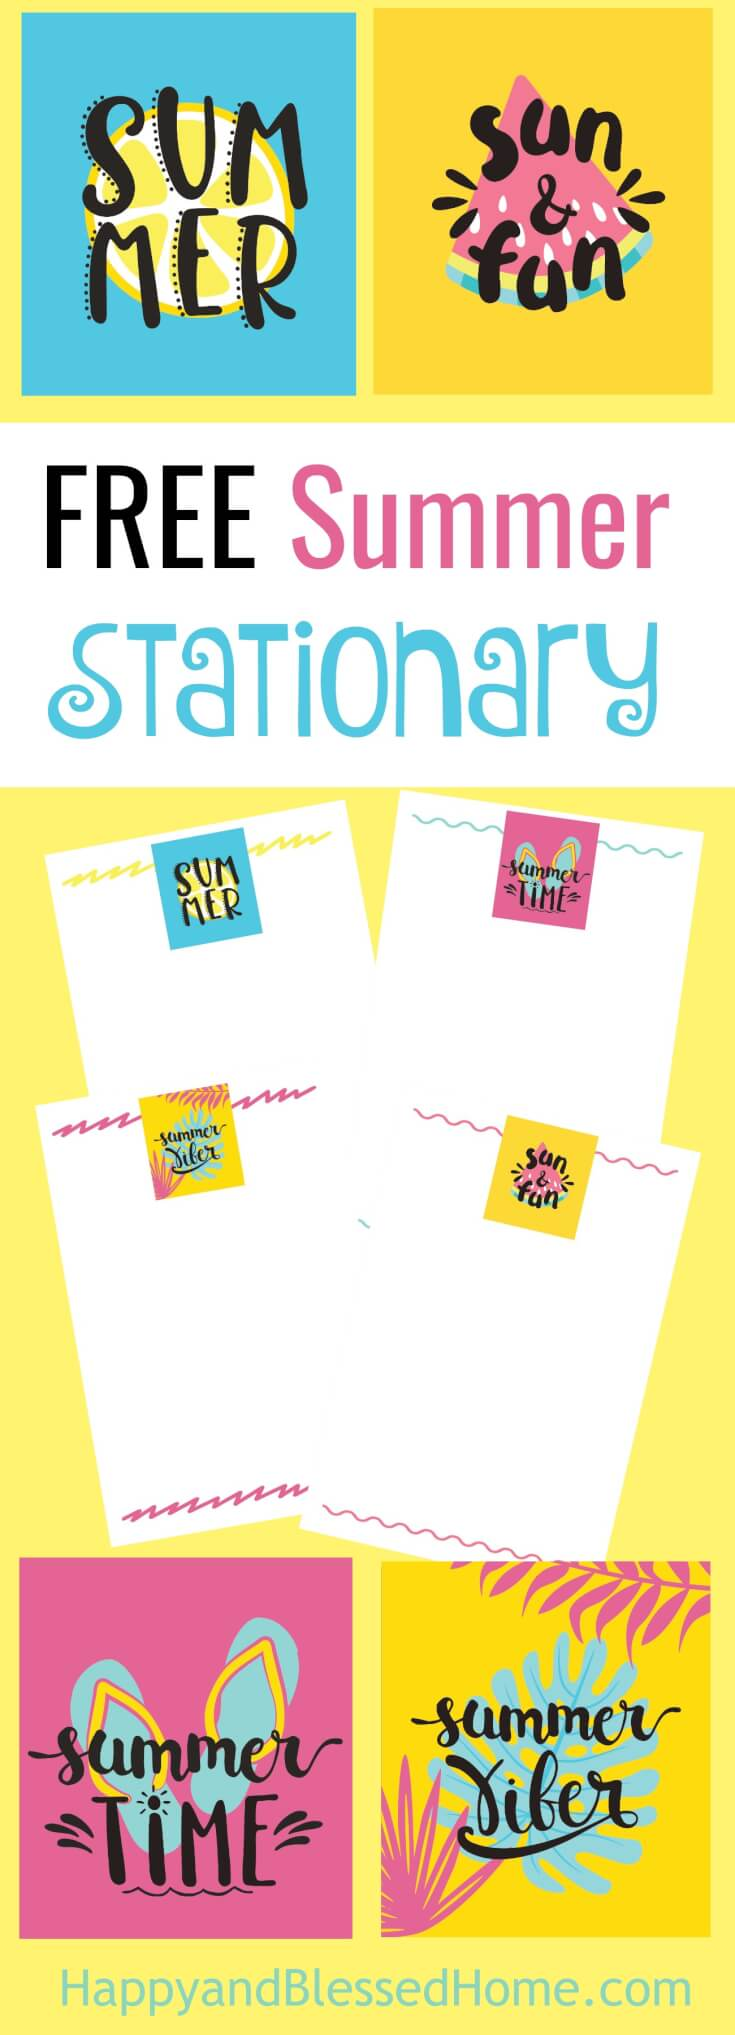 Summer Stationary from HappyandBlessedHome.com